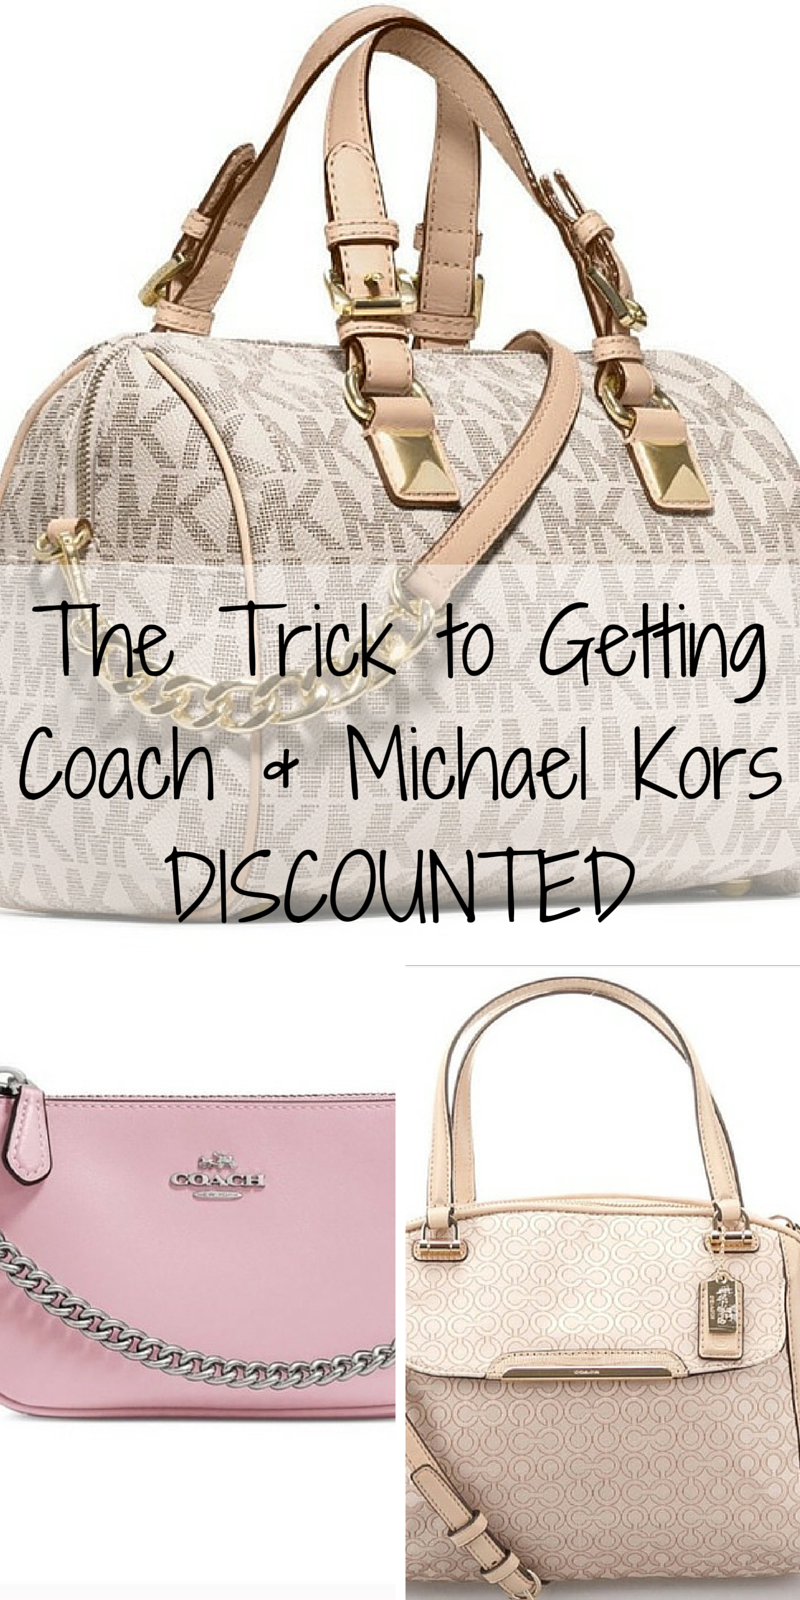 d3339e9ab451a8 Upgrade your closet at a fraction of the price! Shop Michael Kors, Coach,  Tory Burch, and hundreds more at up to 70% off retail. Click to install the  FREE ...